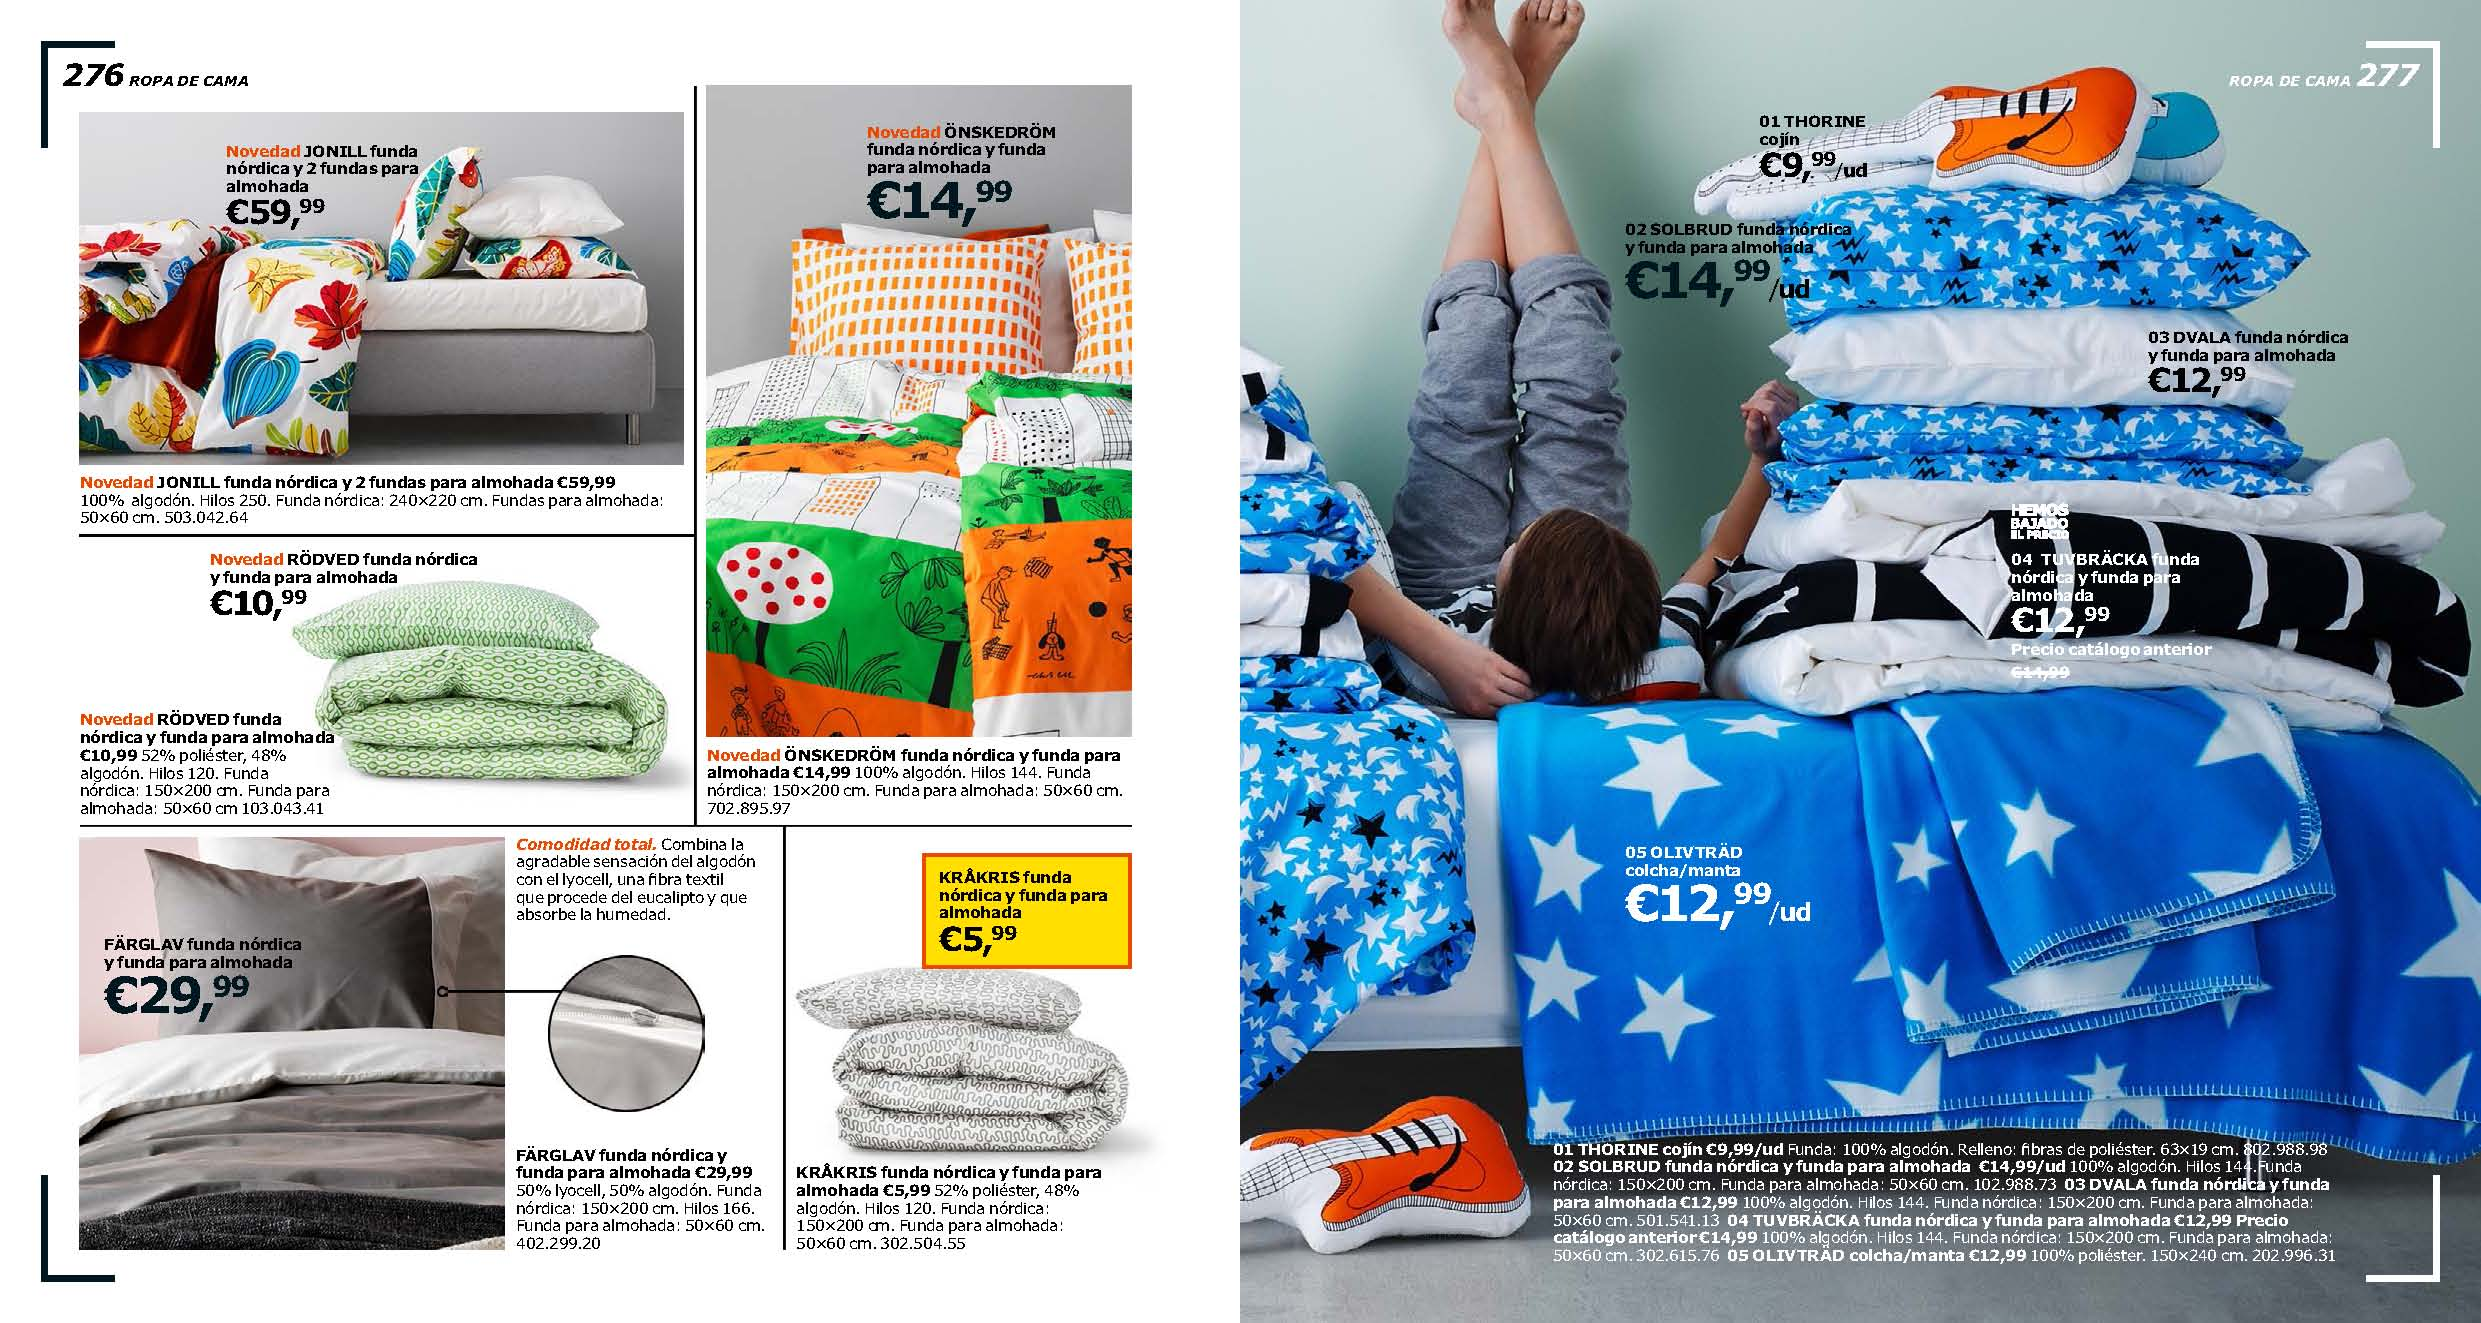 catalog decorate with ikea 2016 es_Page_139